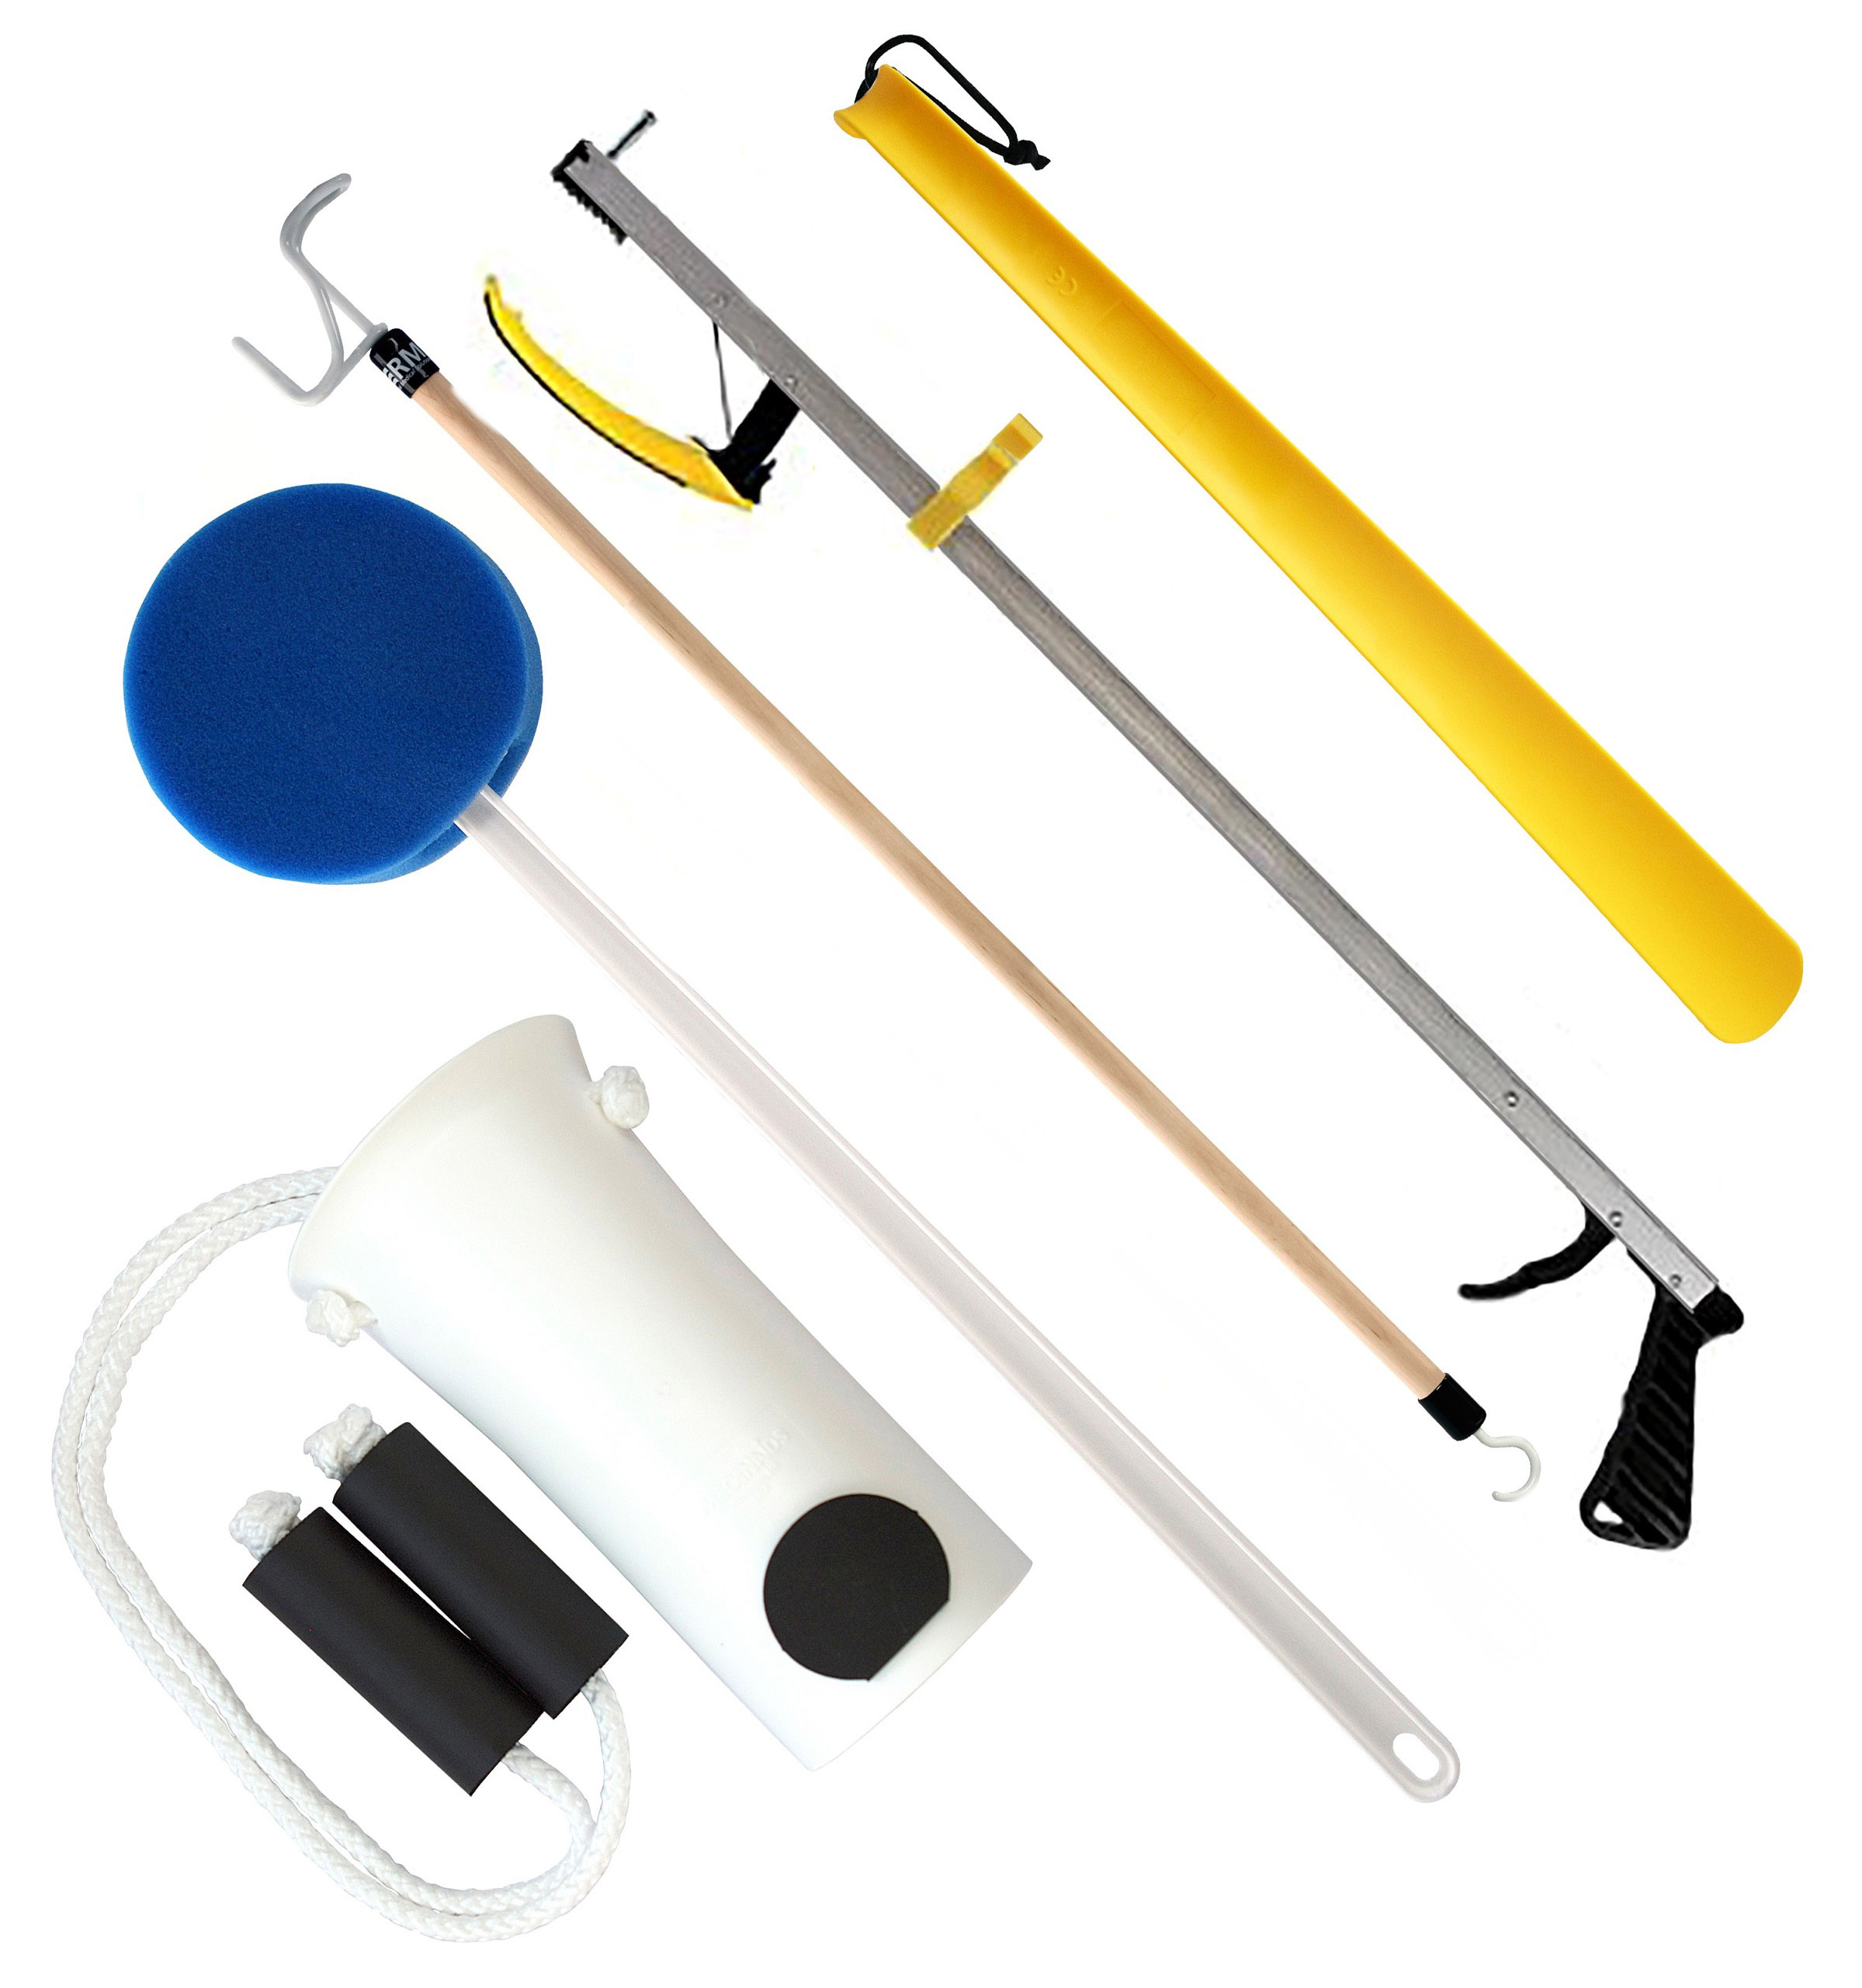 RMS Premium 5-Piece Hip Kit, Hip Equipment Kit, Knee Replacement Kit, Limited Lifetime Warranty